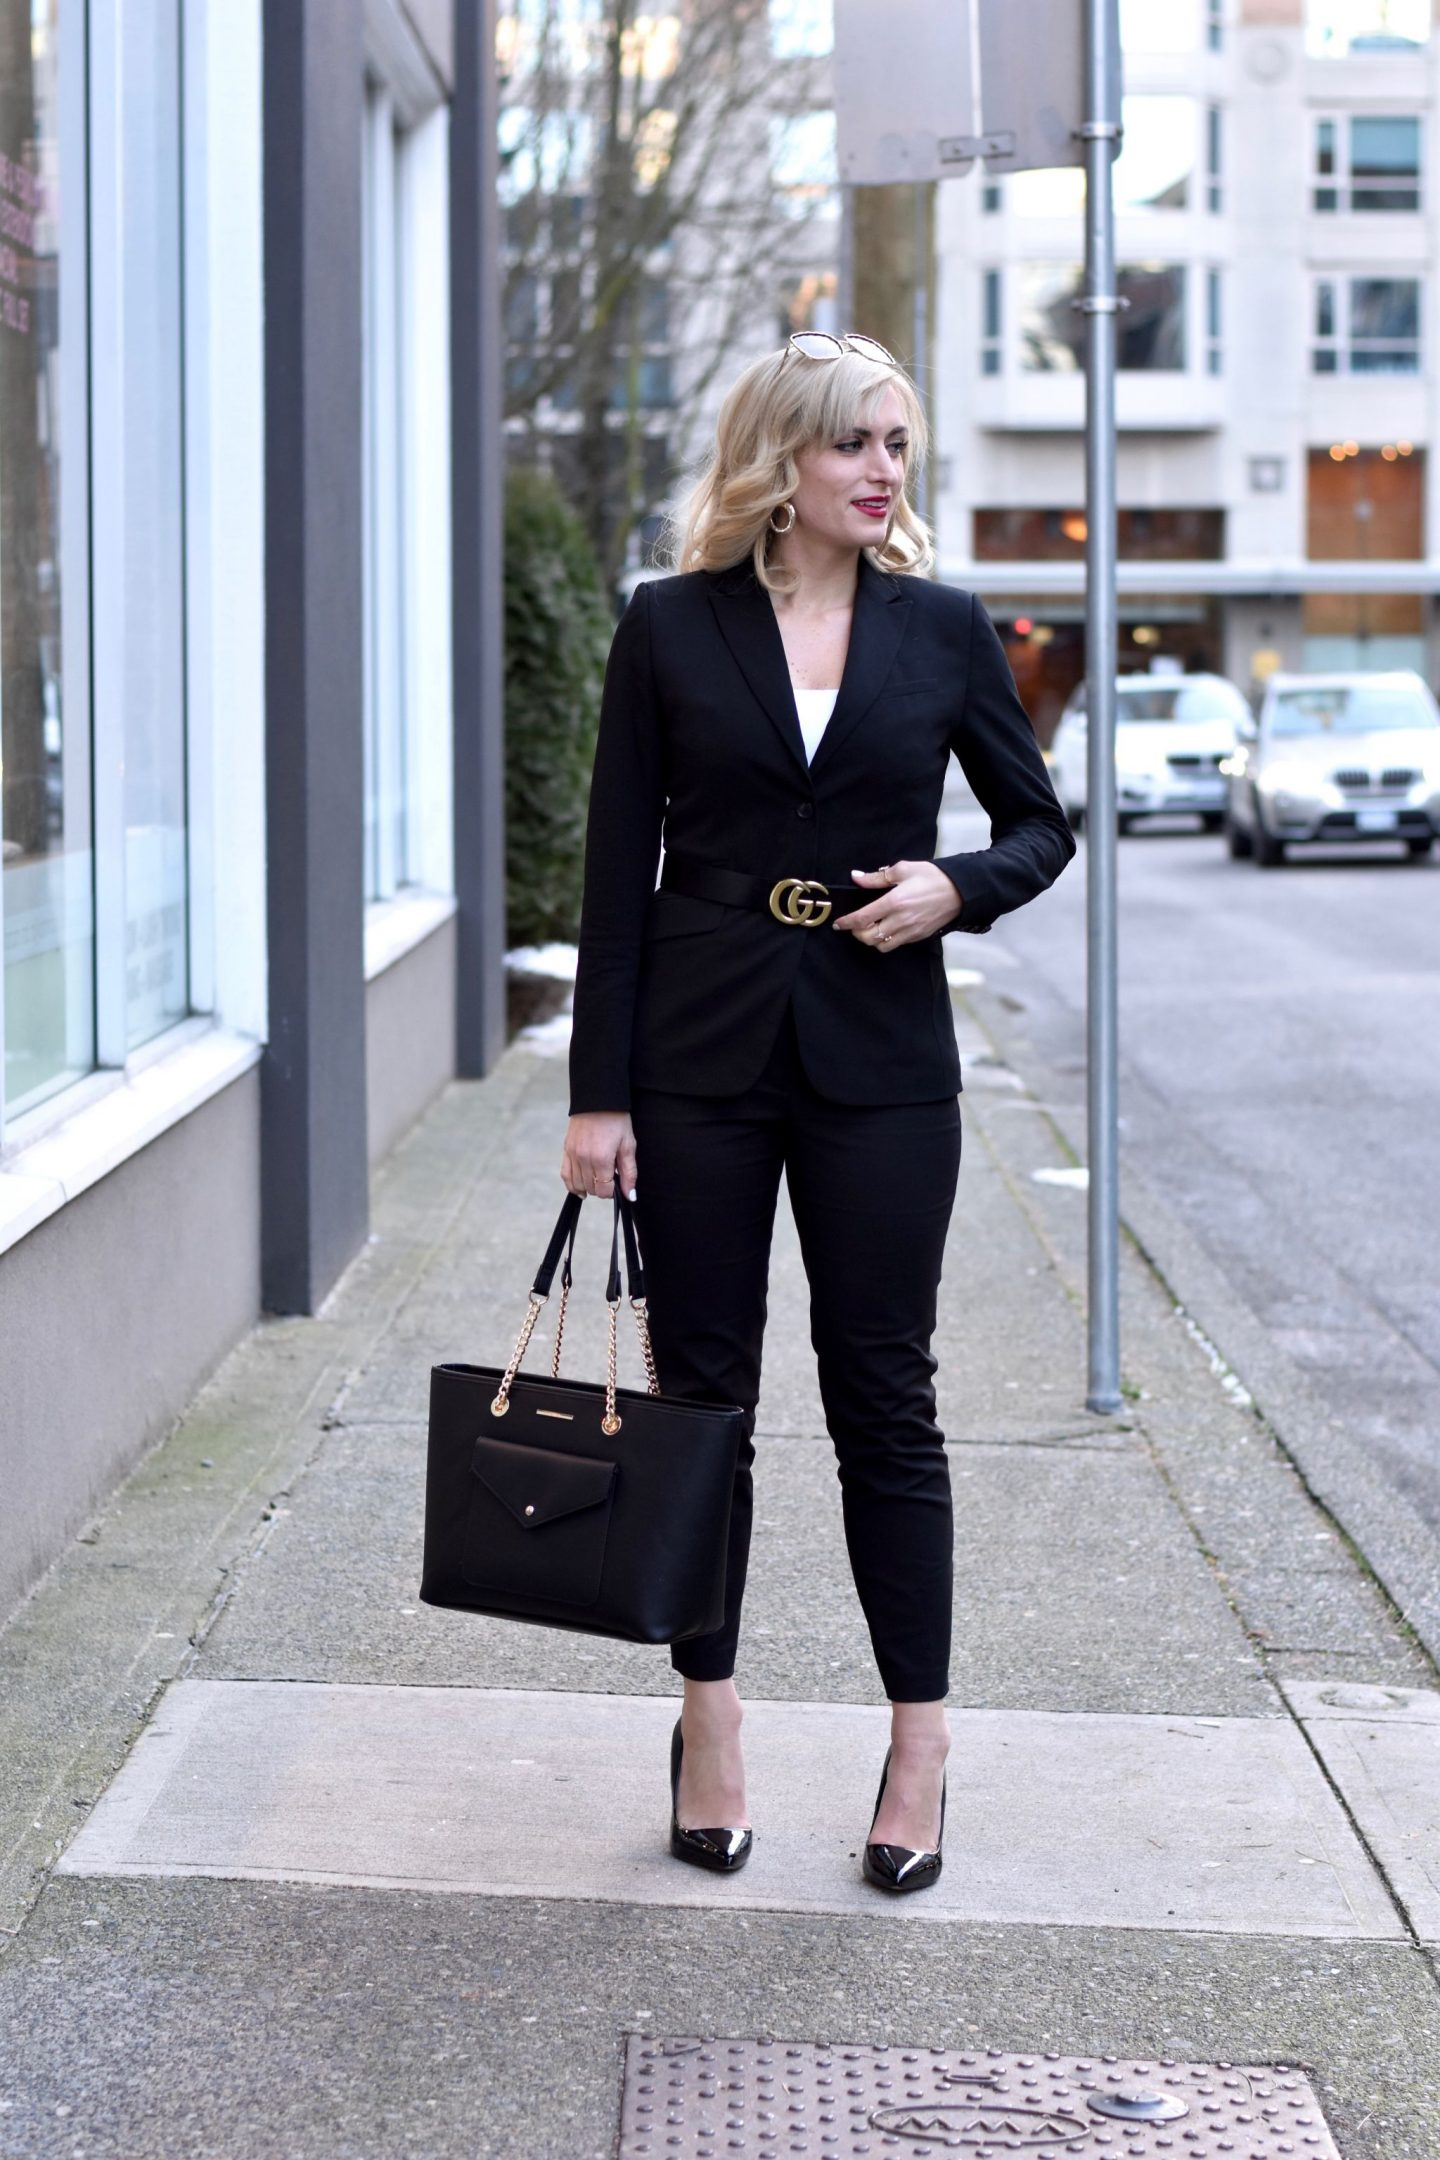 how to wear a pant suit and still look young and fashion forward